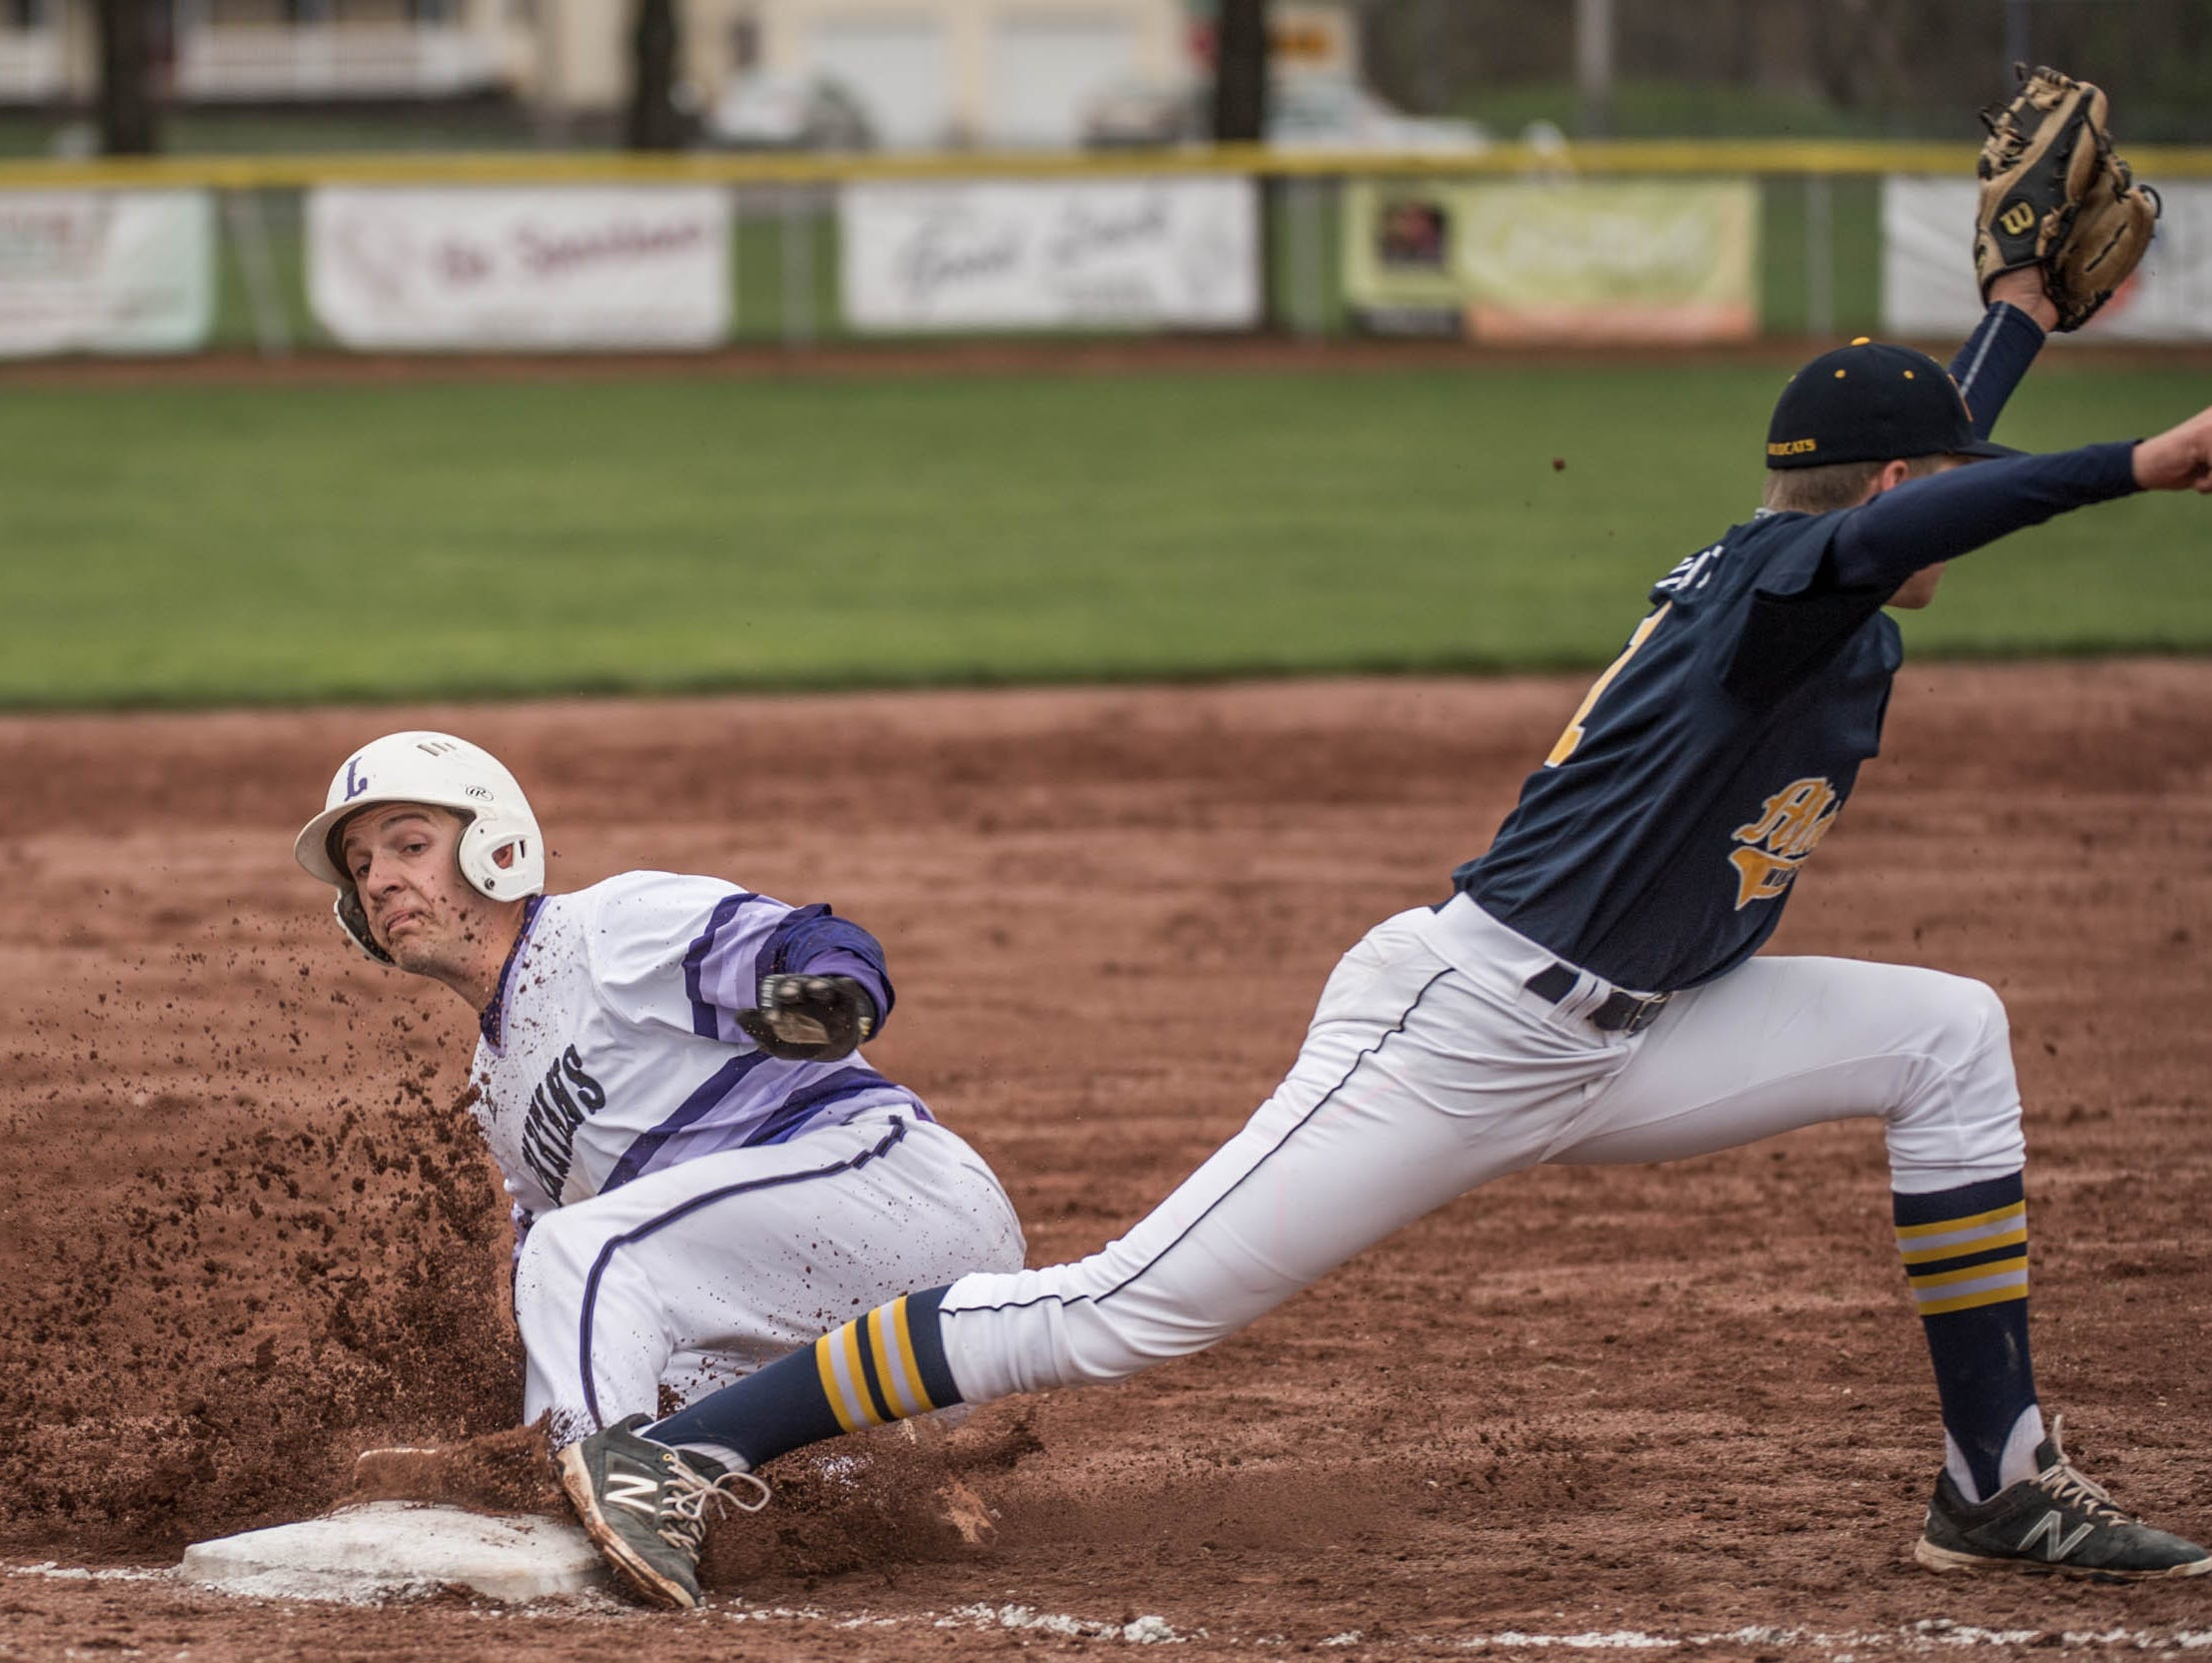 Lakeview senior Nick Jones slides into third during a recent game. The Spartans are undefeated and ranked No. 5 in the state.